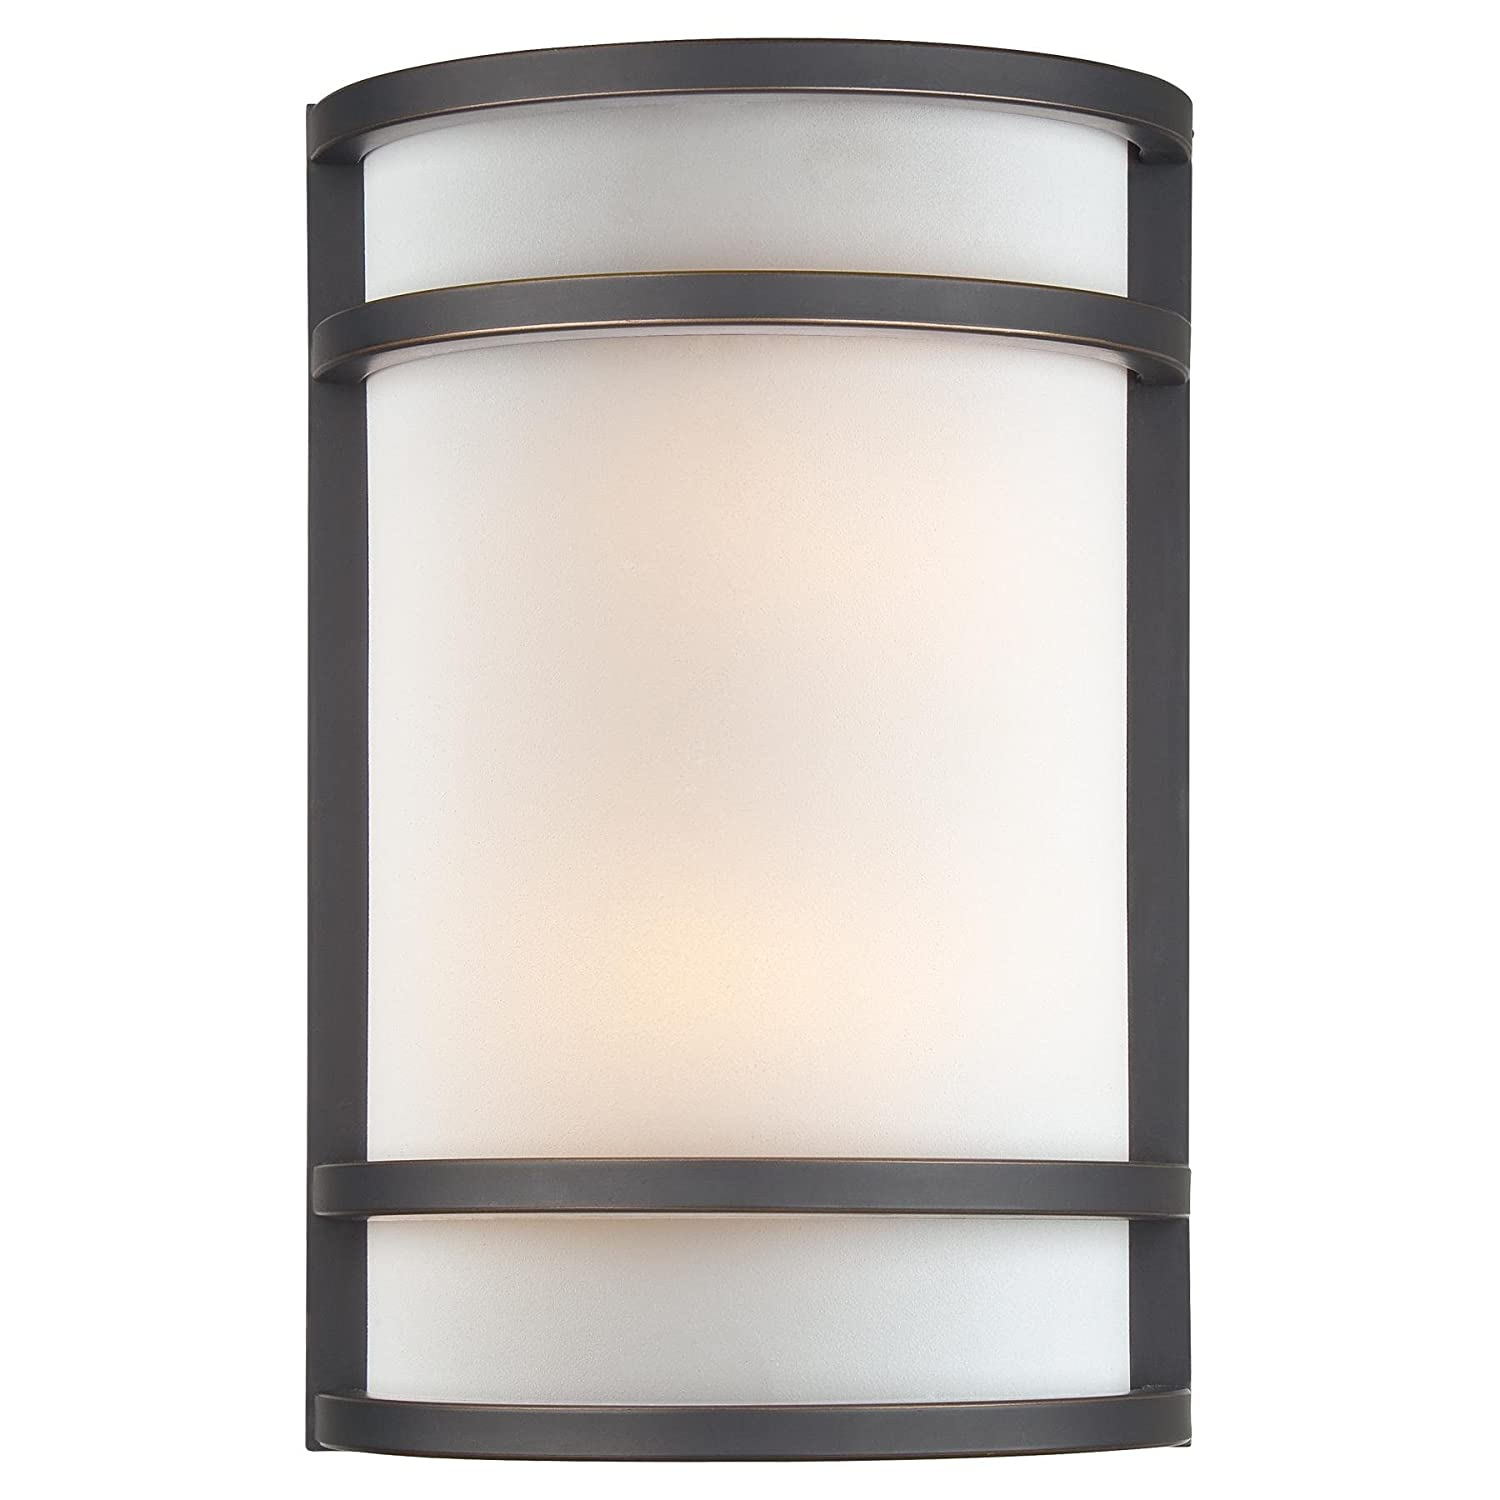 Minka lavery 348 37b 1 light wall sconce dark restoration bronze minka lavery 348 37b 1 light wall sconce dark restoration bronze amazon aloadofball Image collections